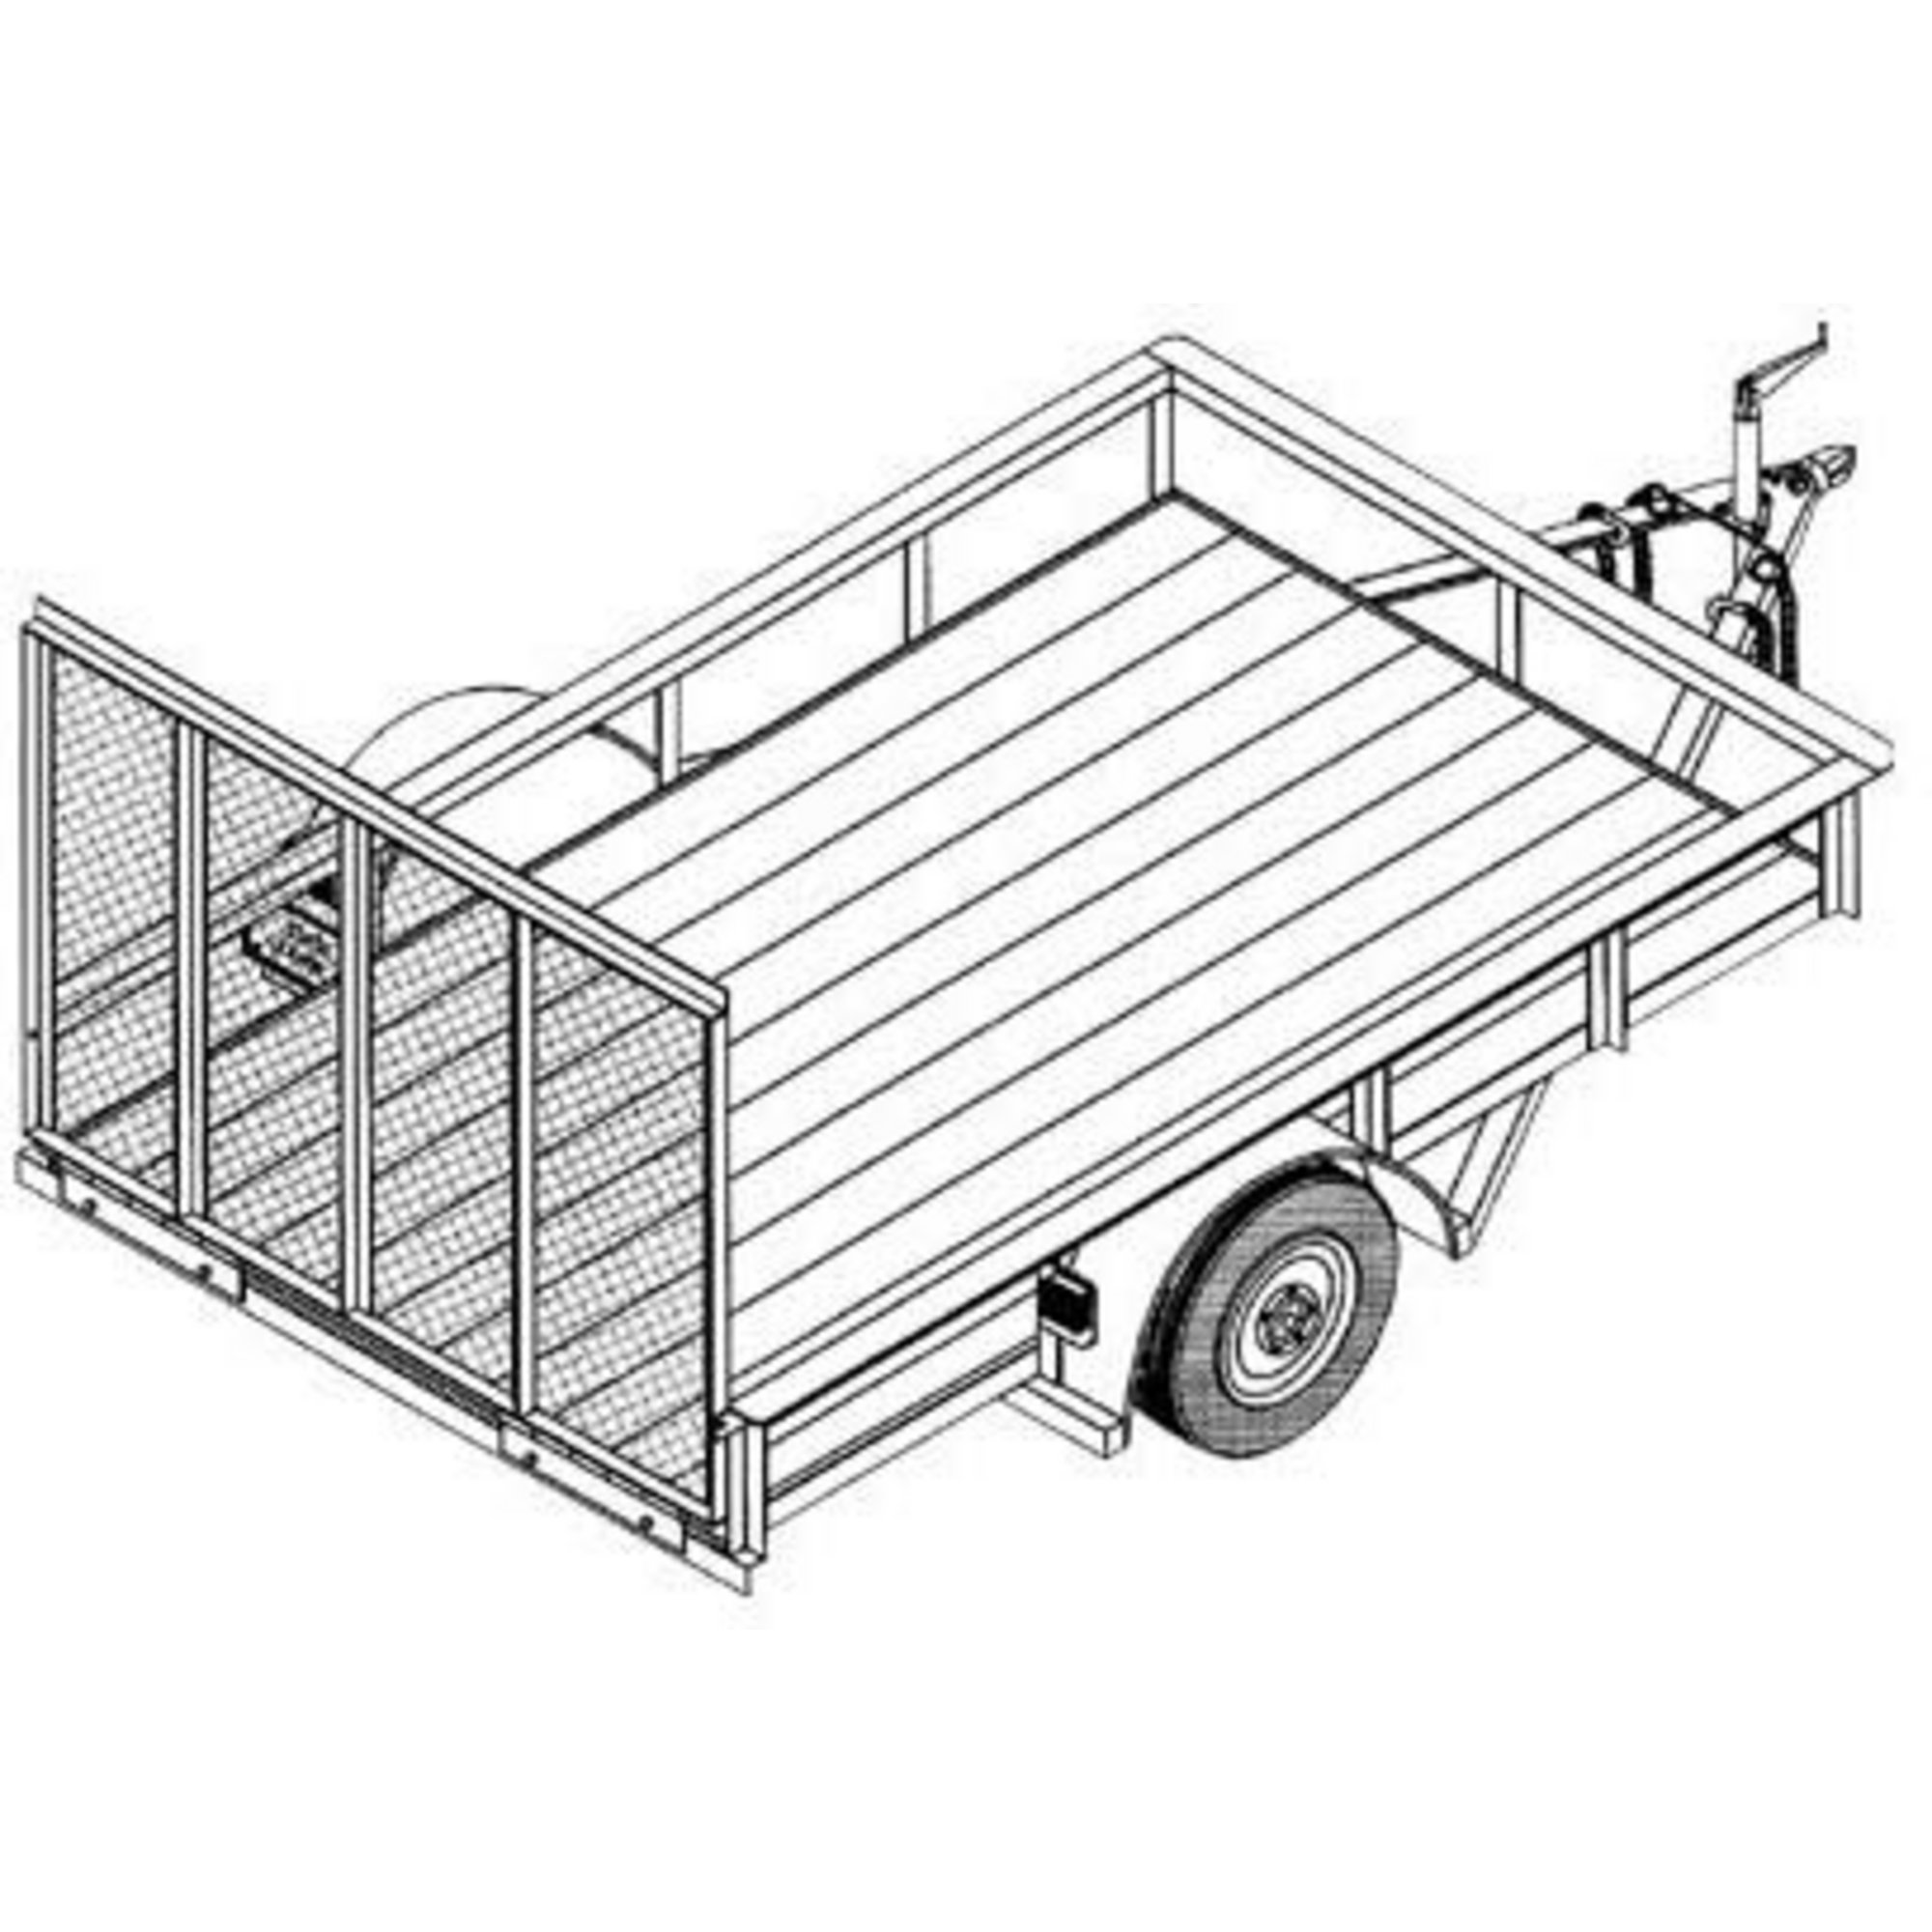 hight resolution of 2000x2000 utility trailer blueprints northern tool equipment